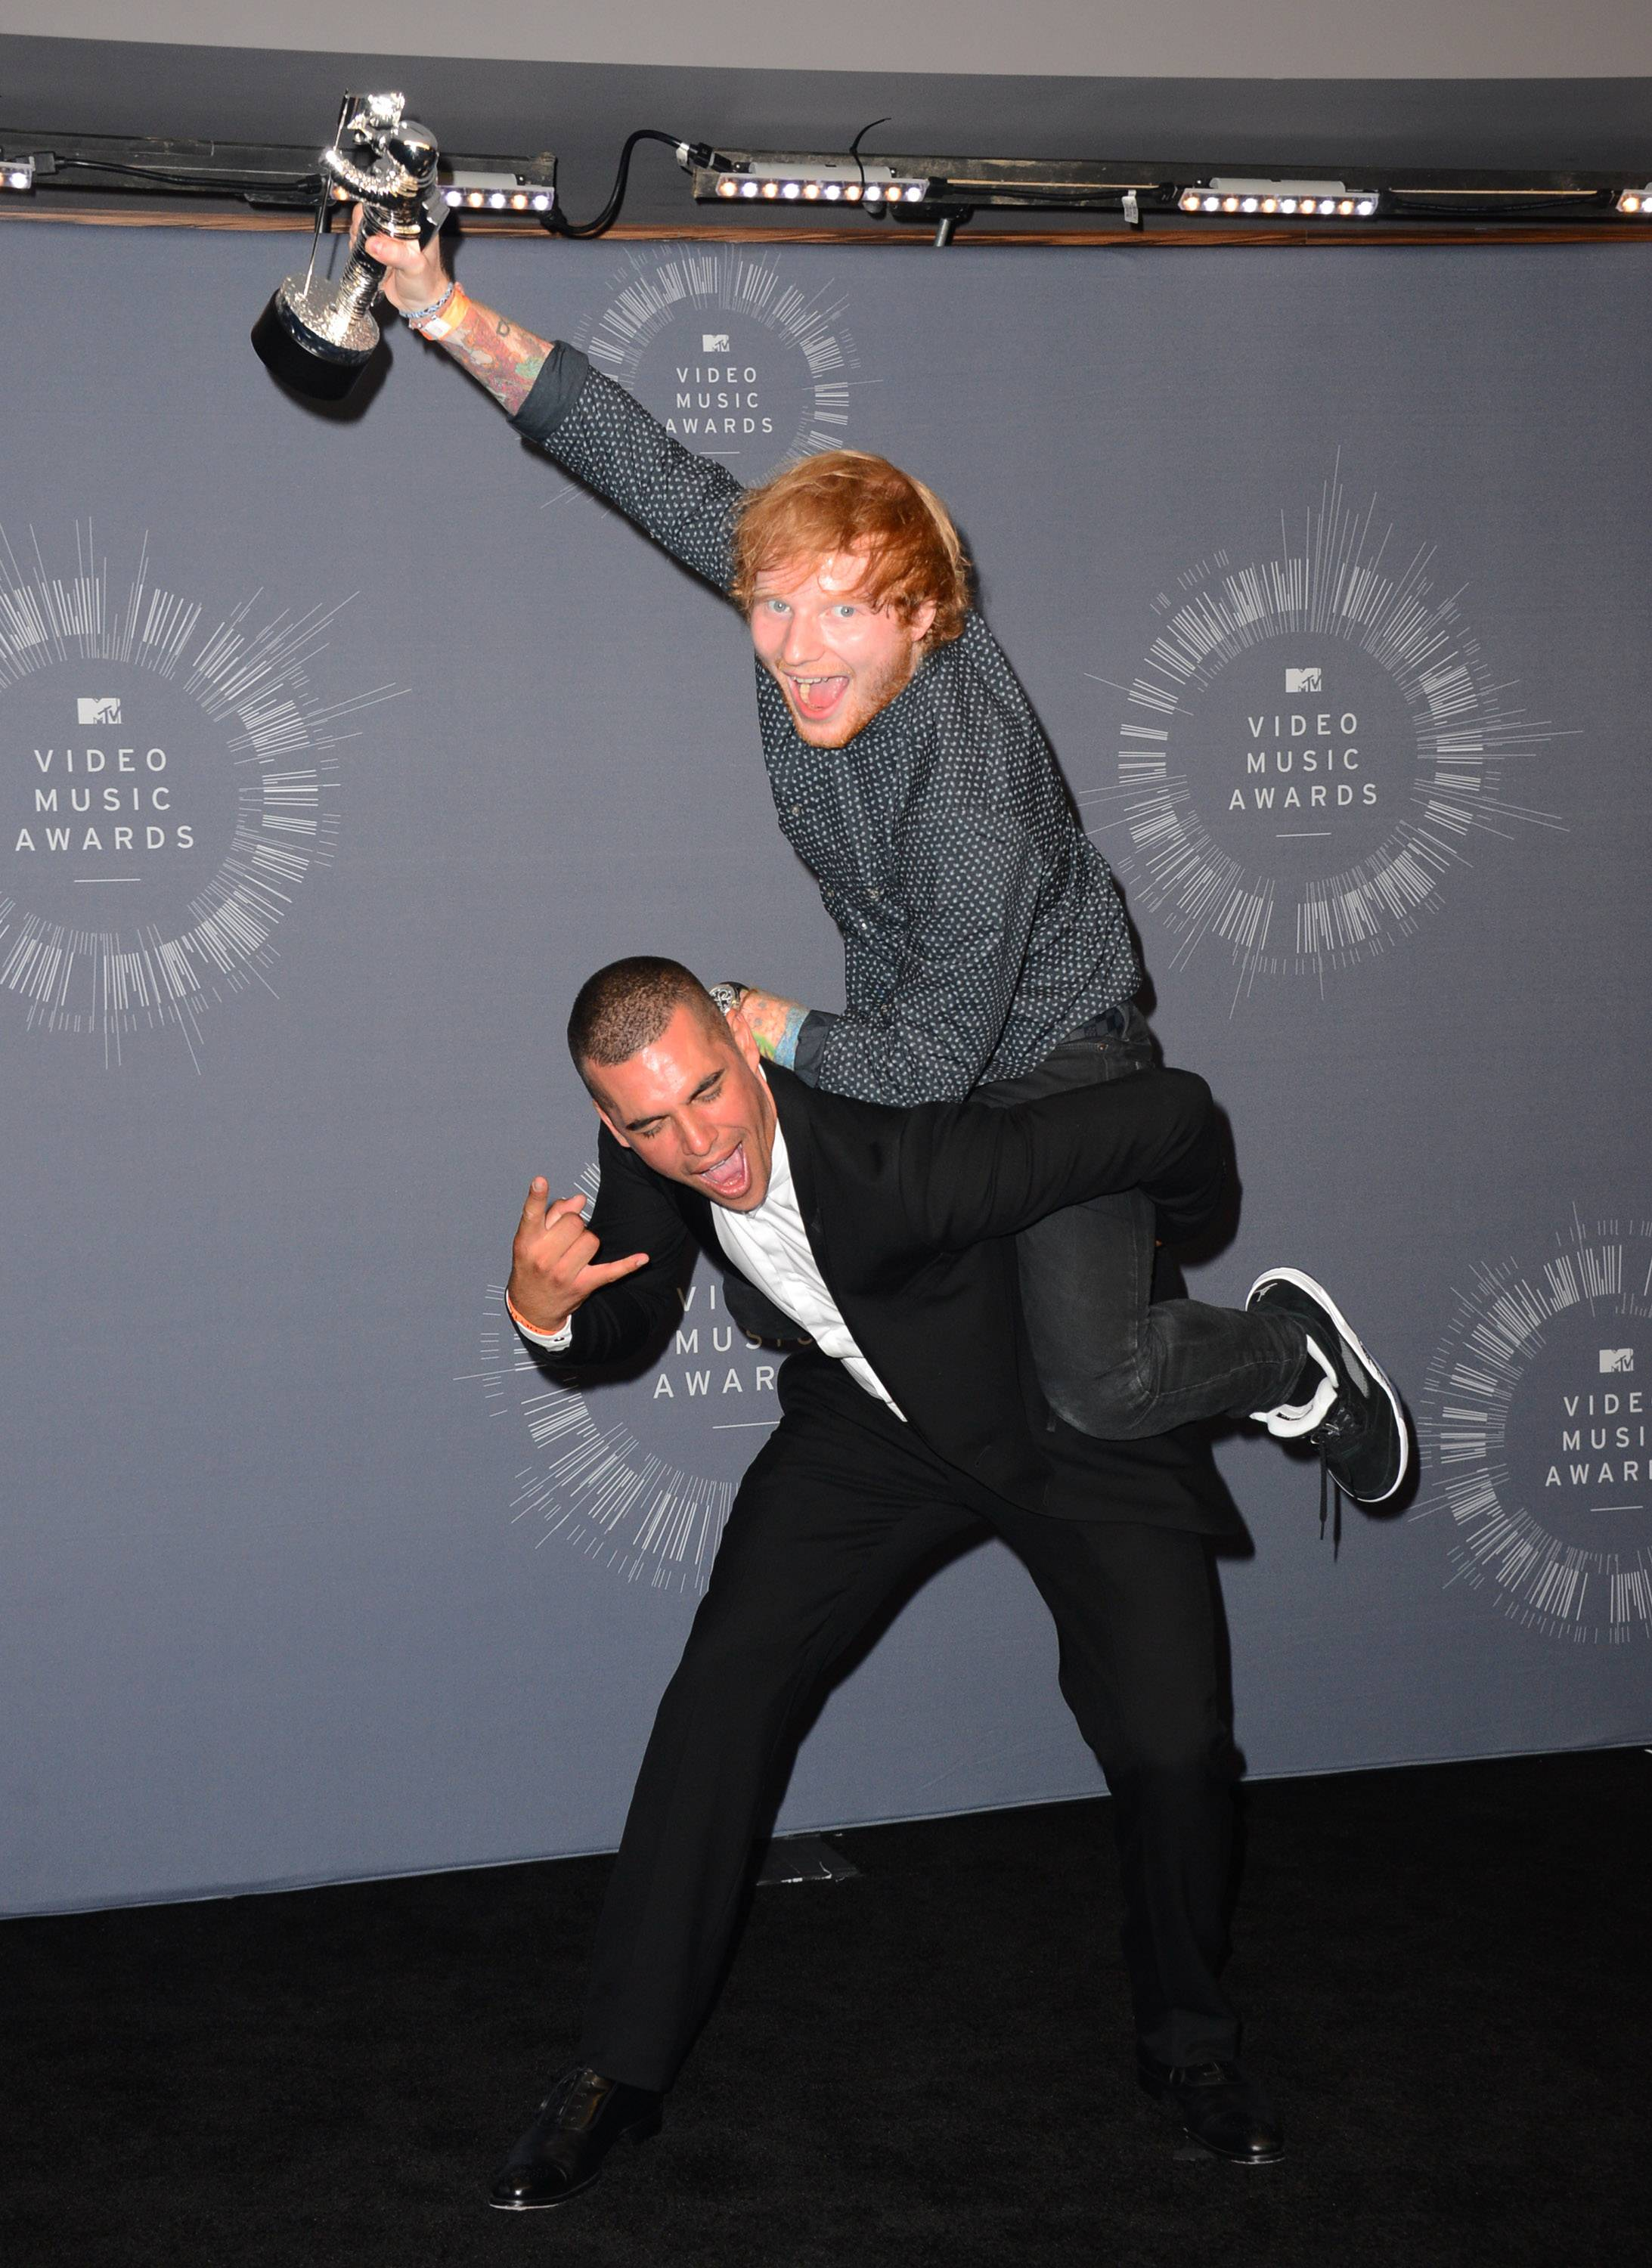 Emil Nava, left, and Ed Sheeran pose with the award for Best Male Video Award in the press room at the MTV Video Music Awards